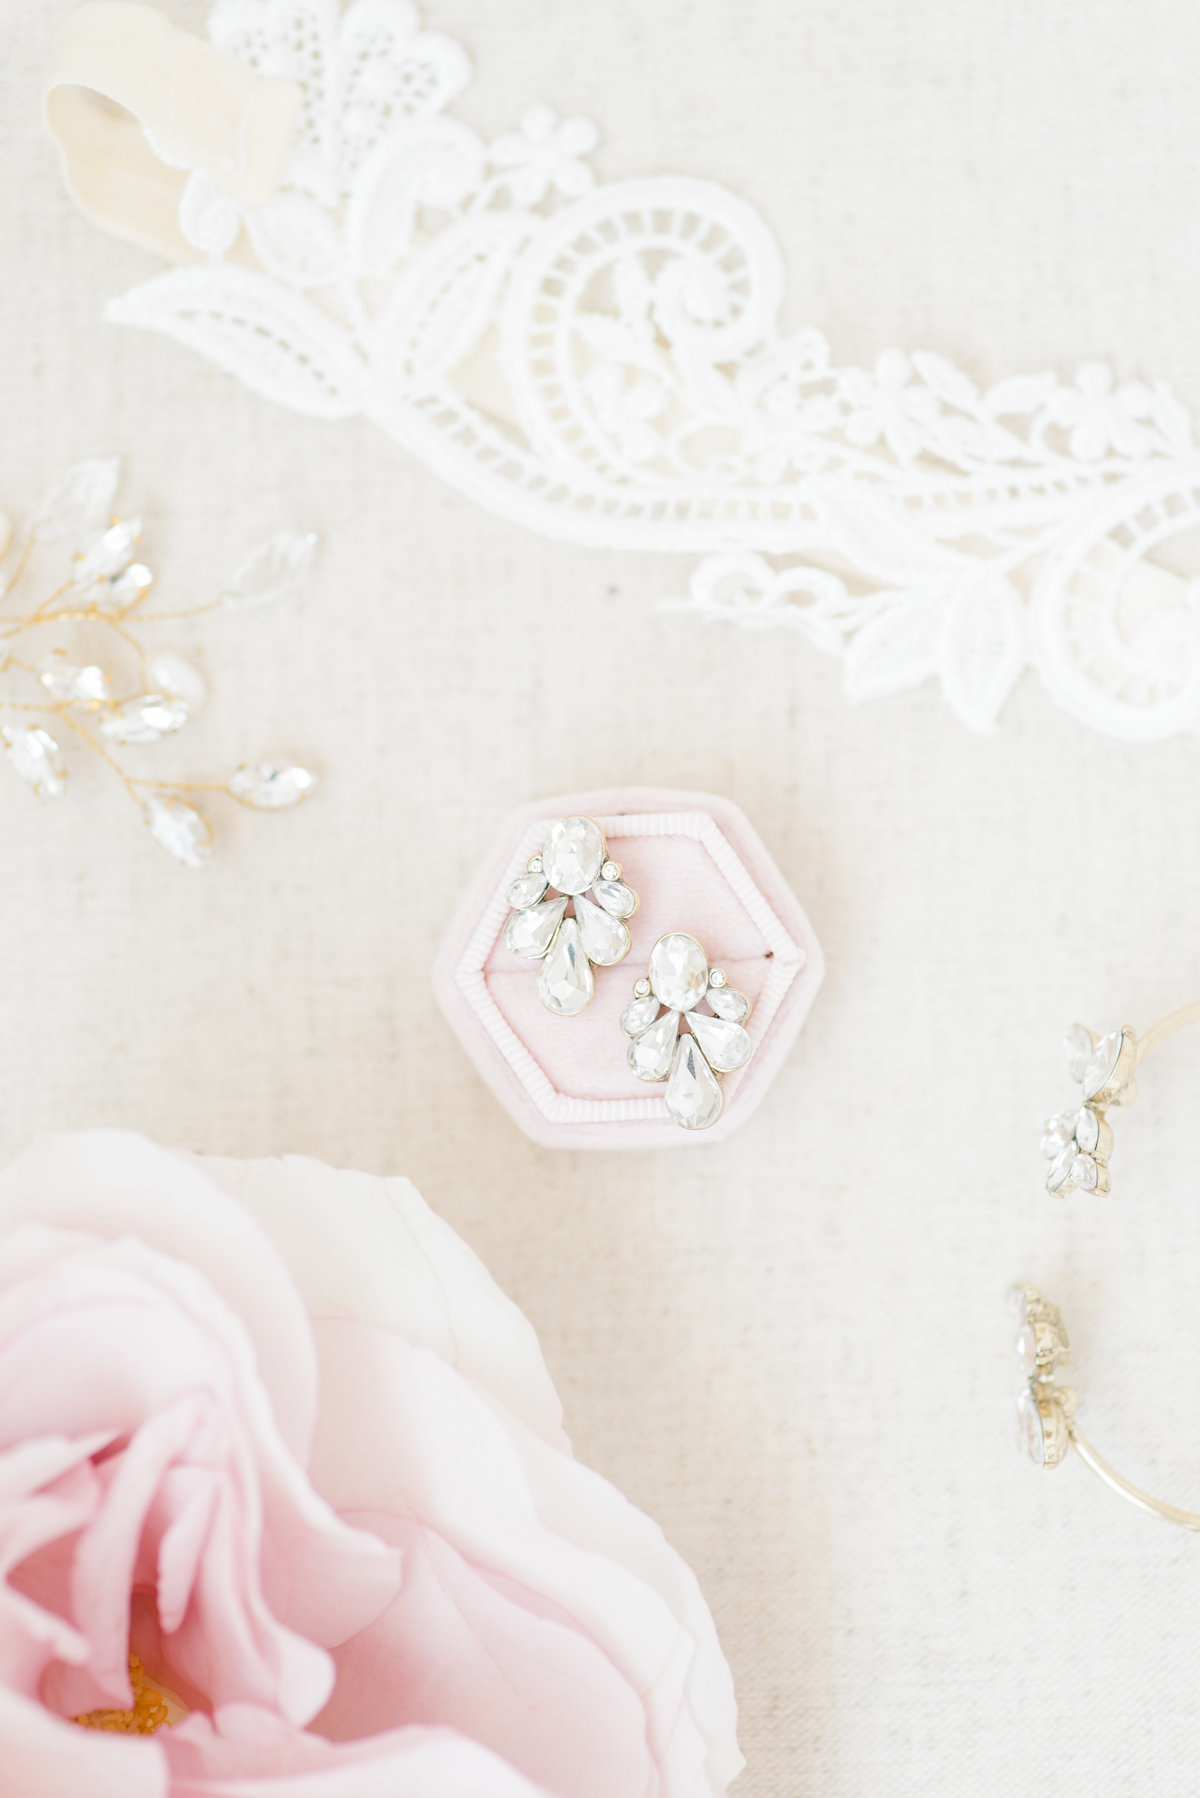 styled-jewelry-near-pink-flowers